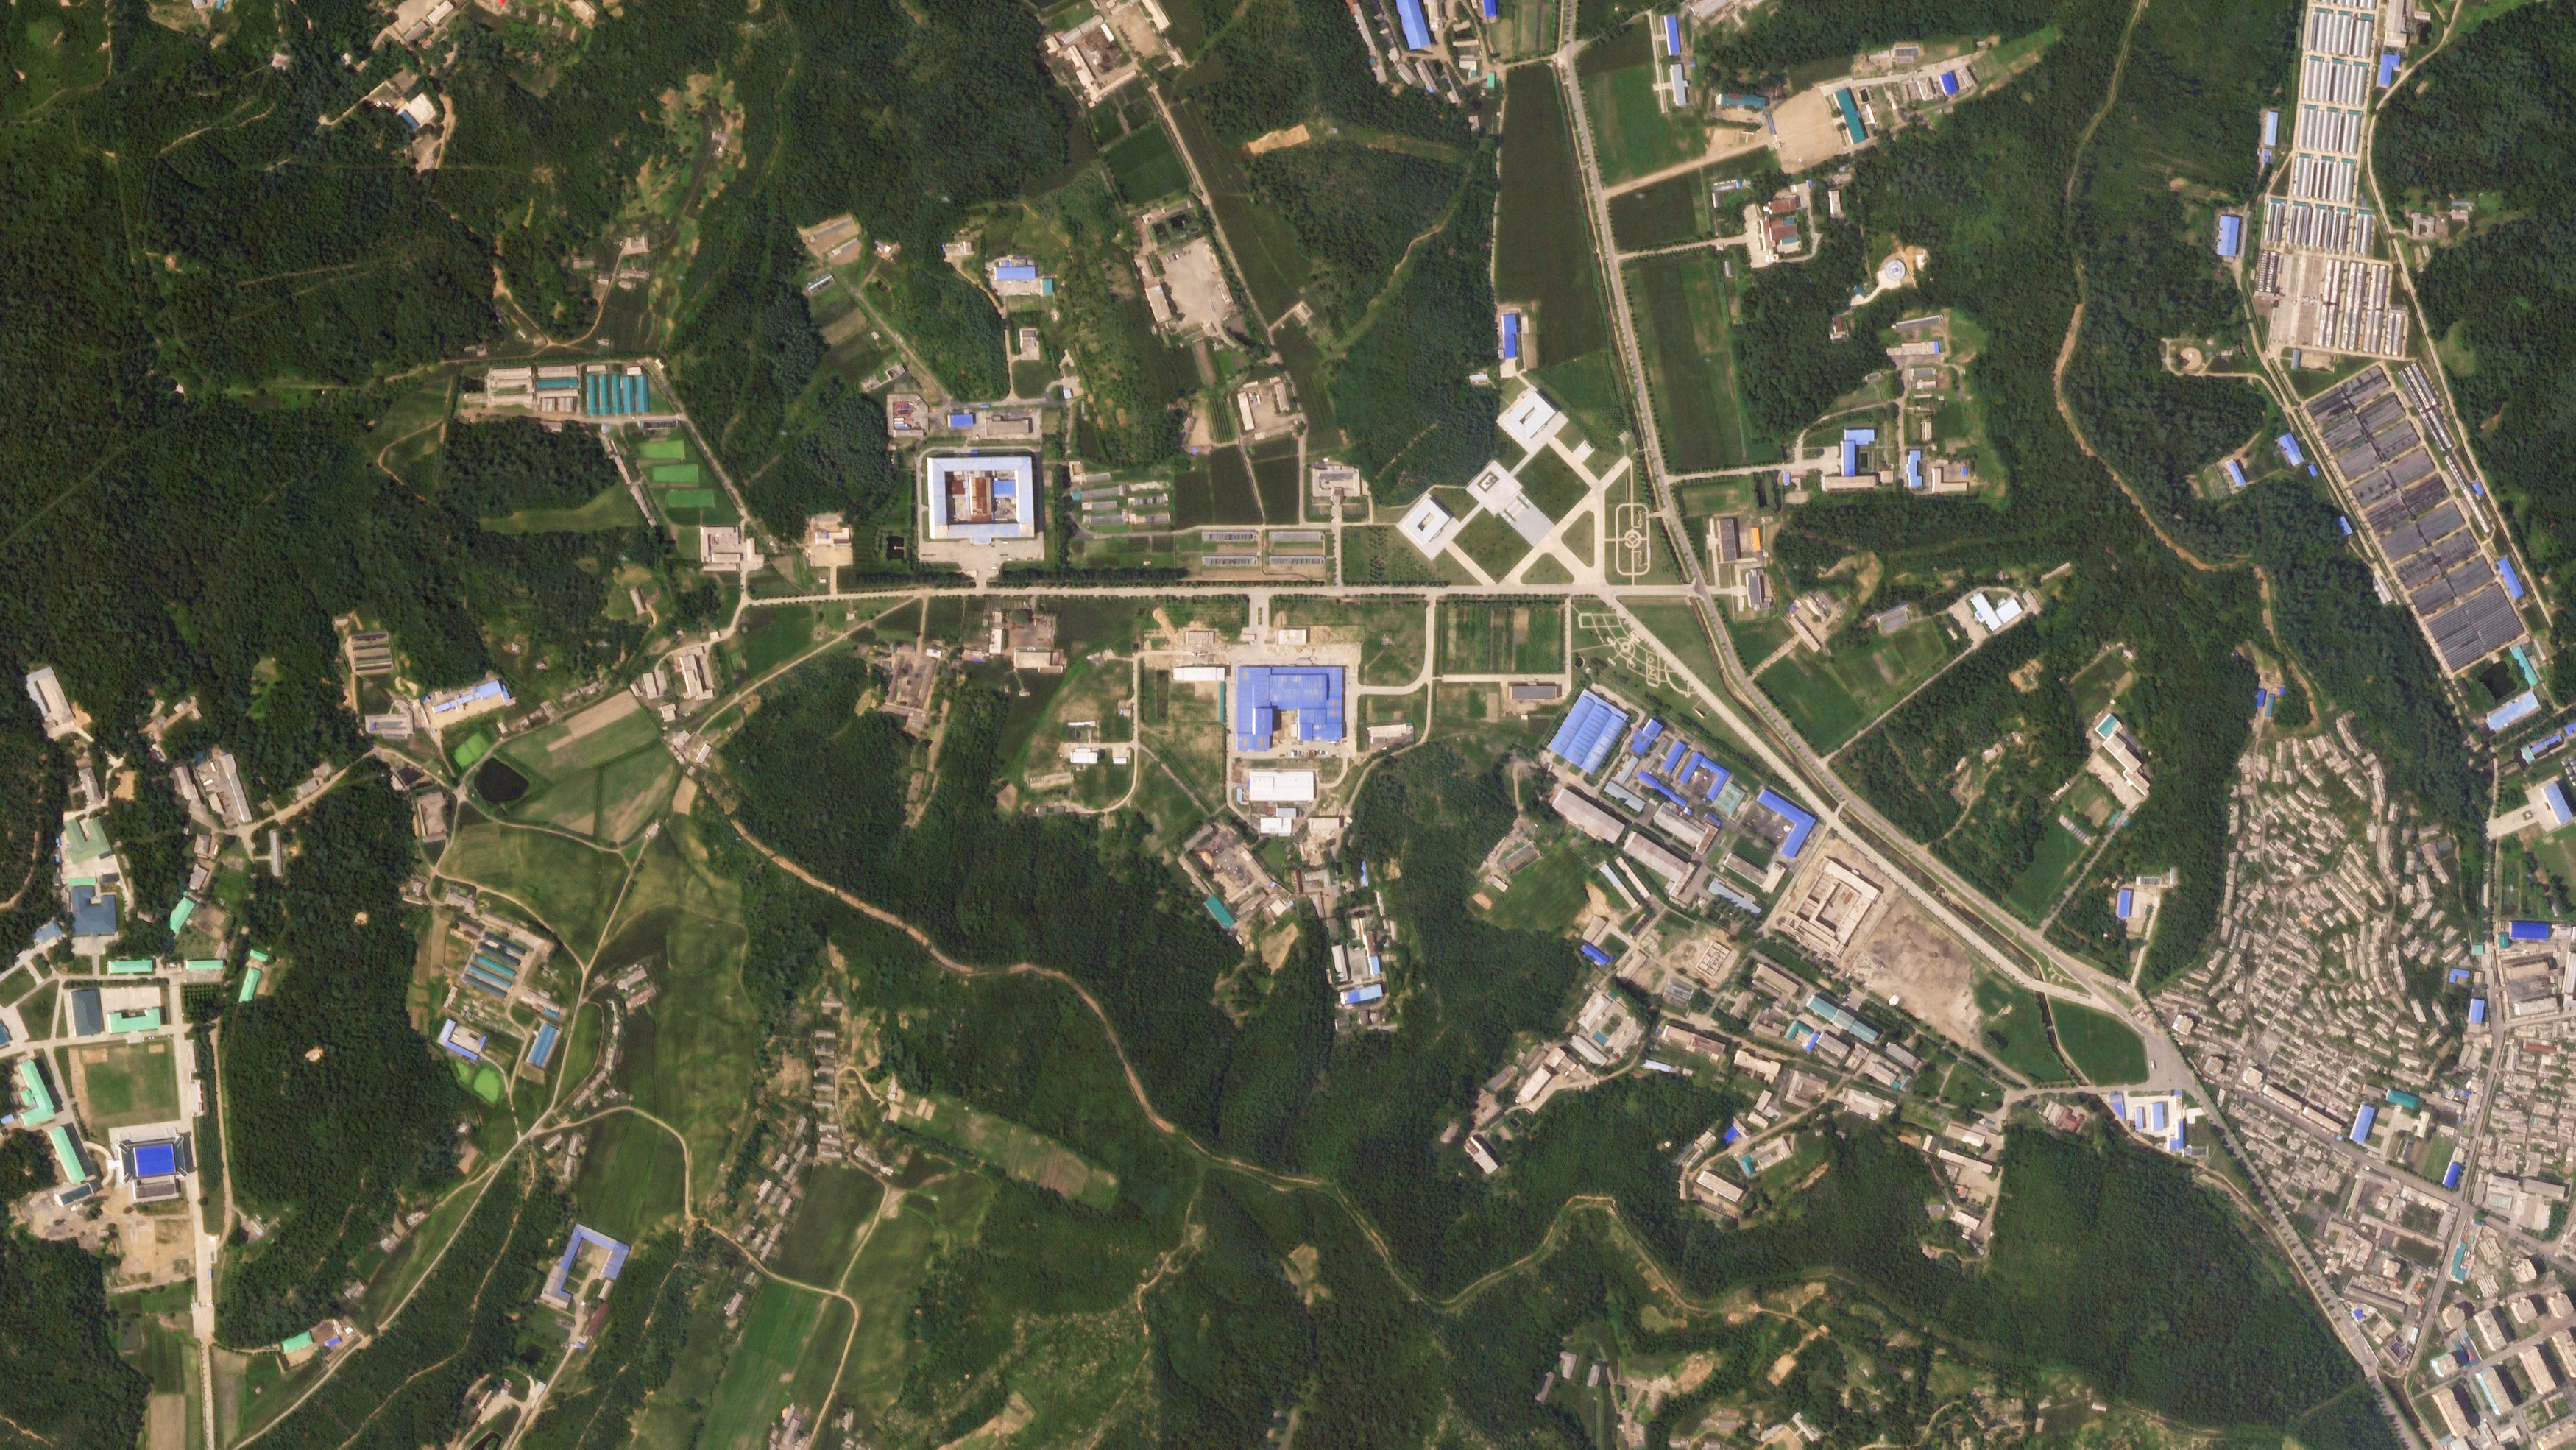 A satellite image shows the Sanumdong missile production site in North Korea on July 29, 2018. Planet Labs Inc/Handout via REUTERS